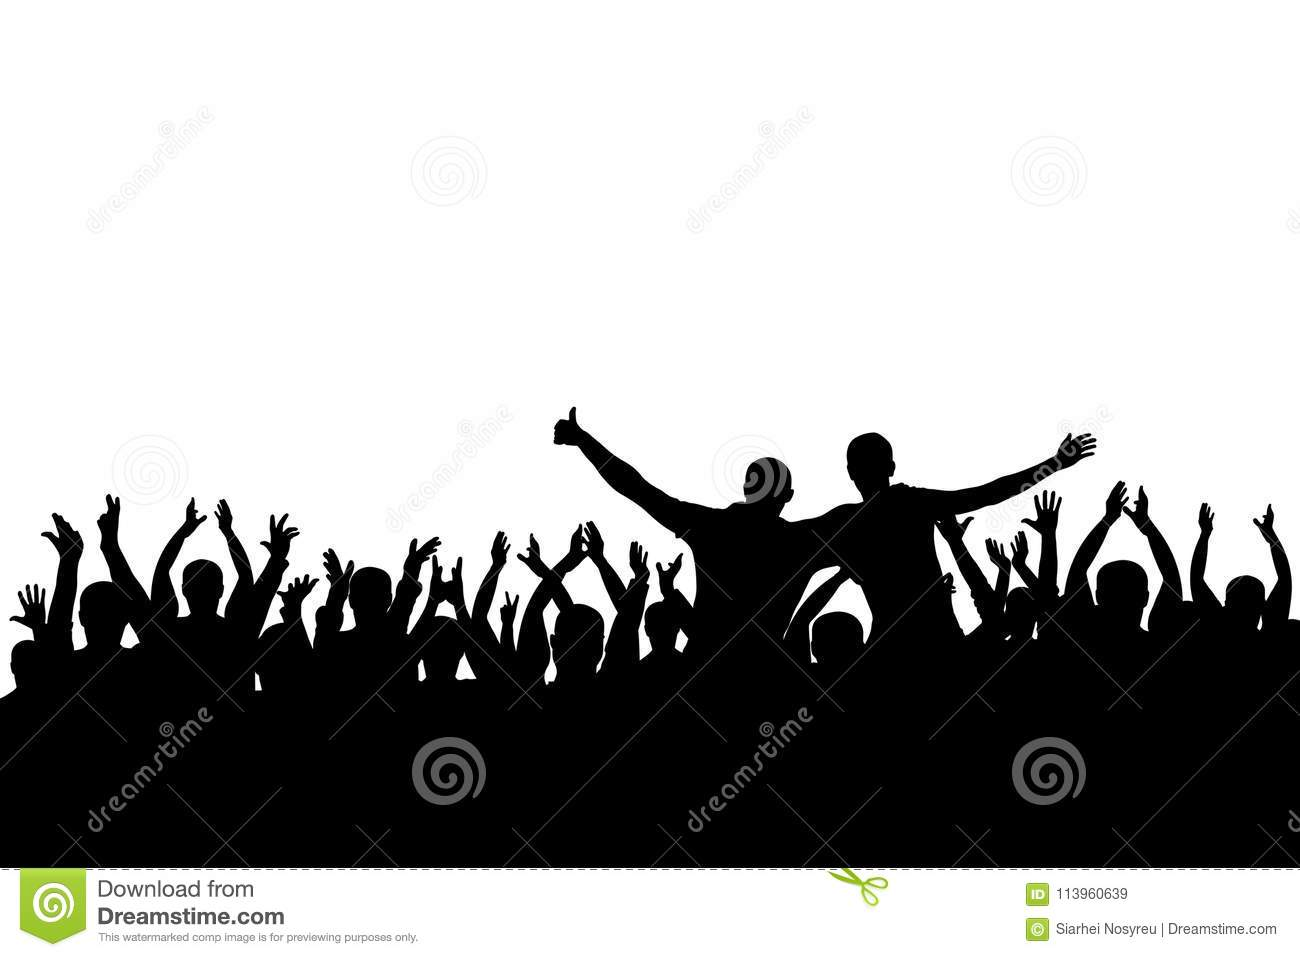 Concert, party. Applause crowd background silhouette, cheerful people. Funny cheering, isolated